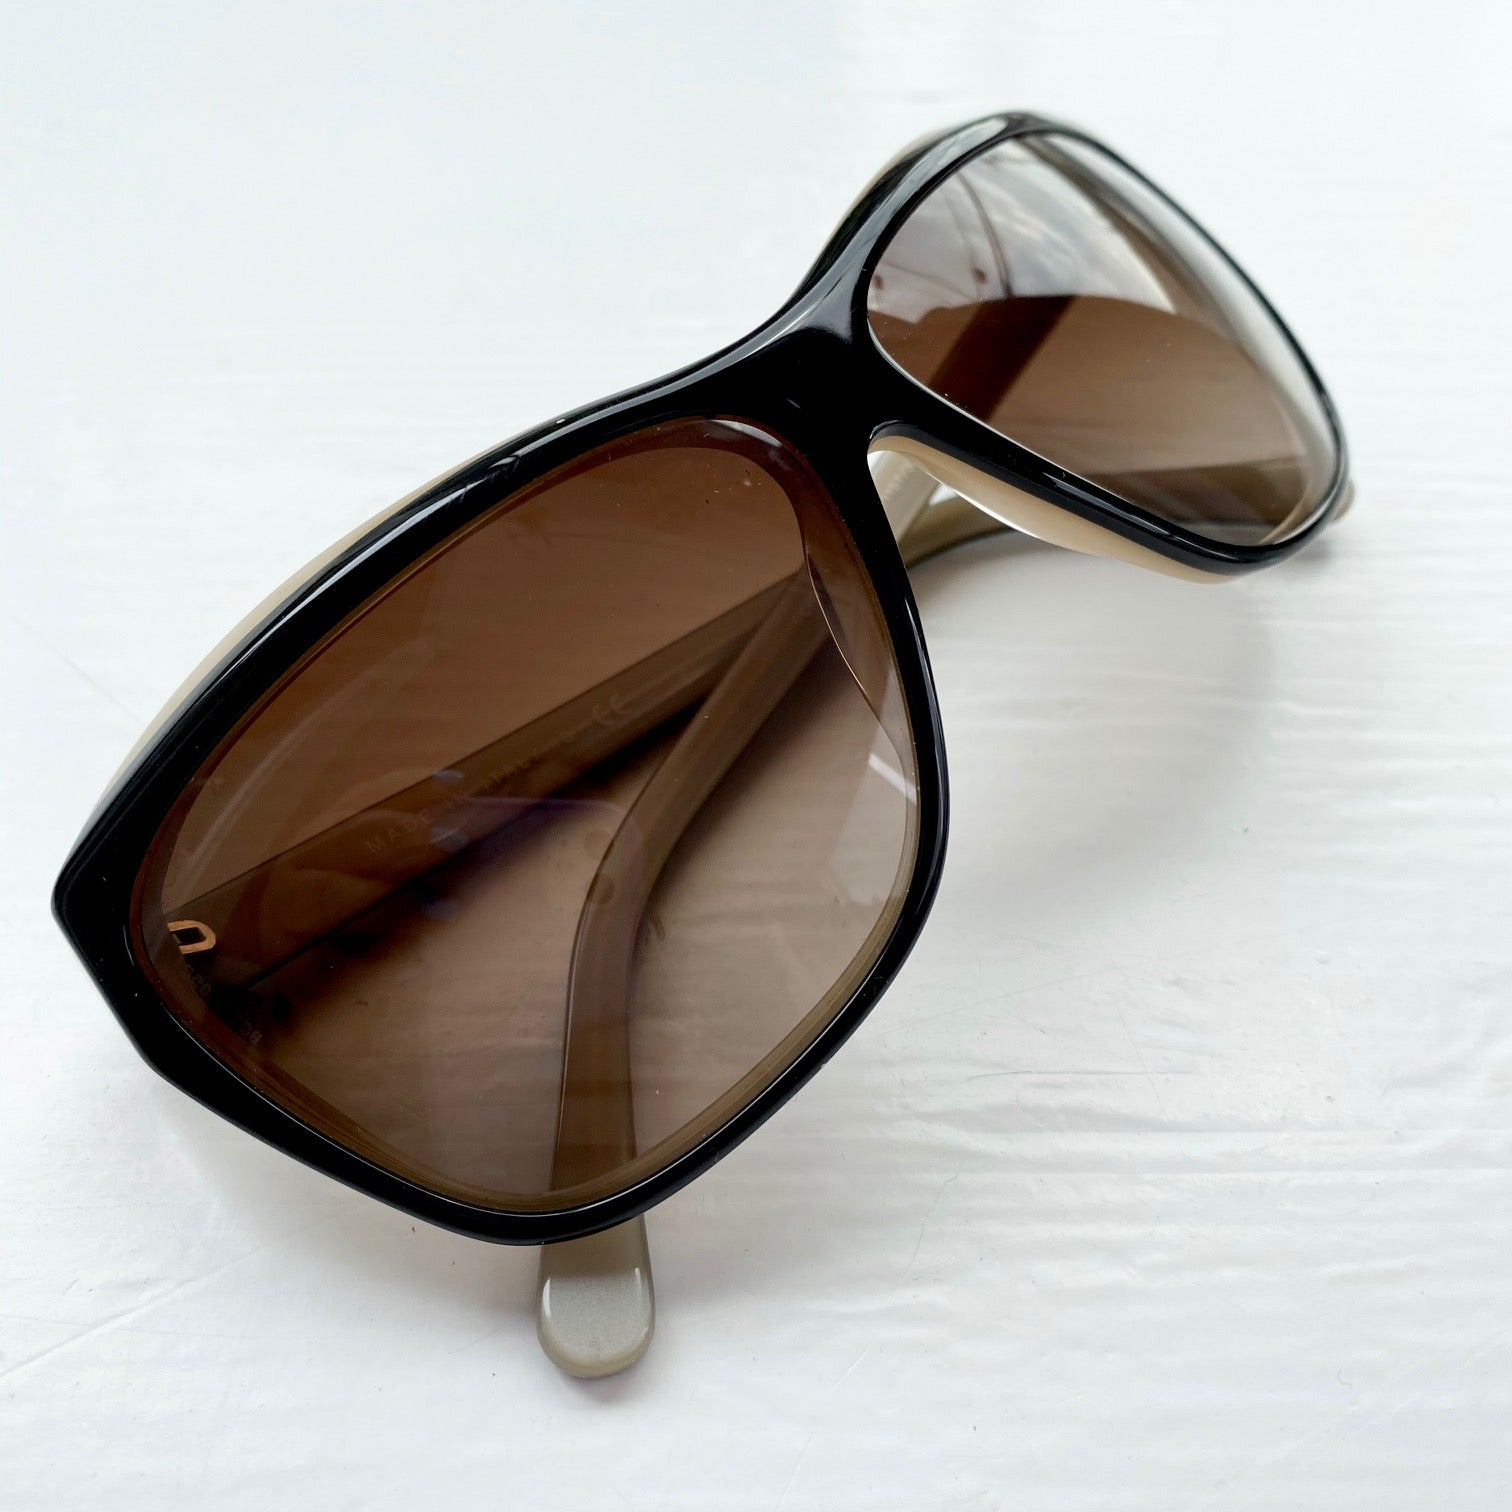 CHANEL Blush Black Classic Sunglasses